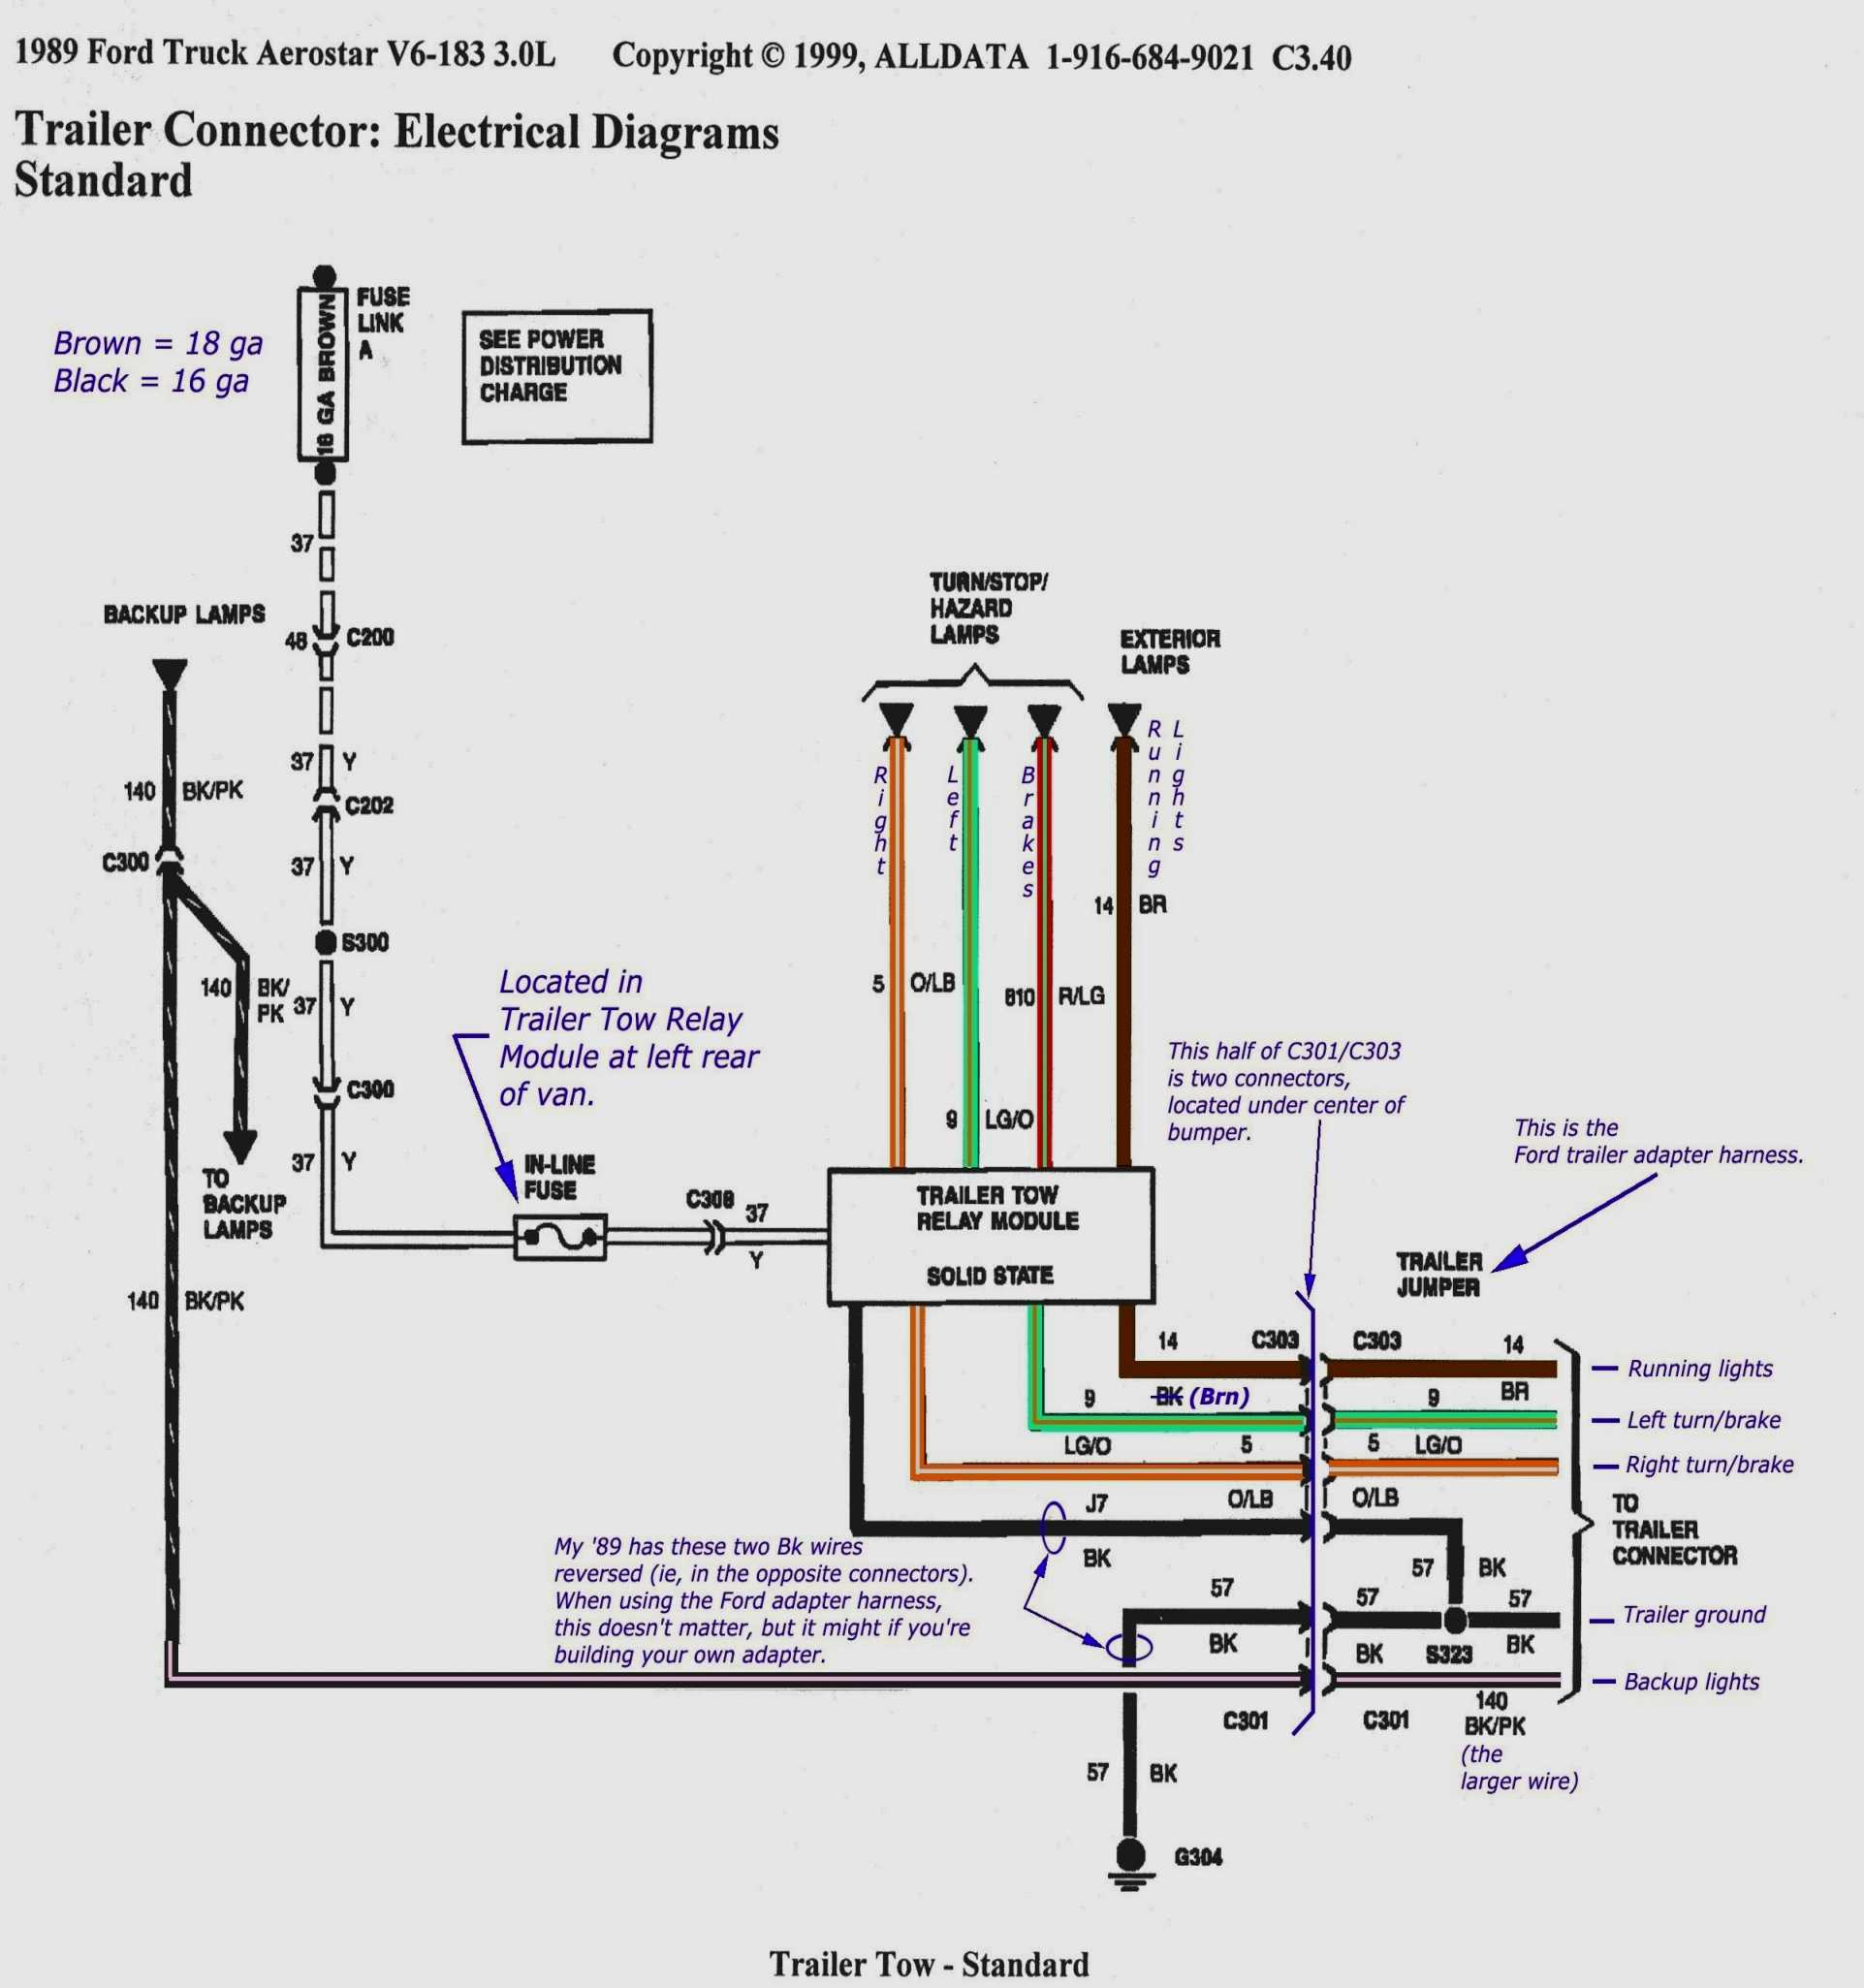 Caravan Wiring Diagram Australia - Wiring Diagrams - Wiring Diagram For Trailer Lights Australia